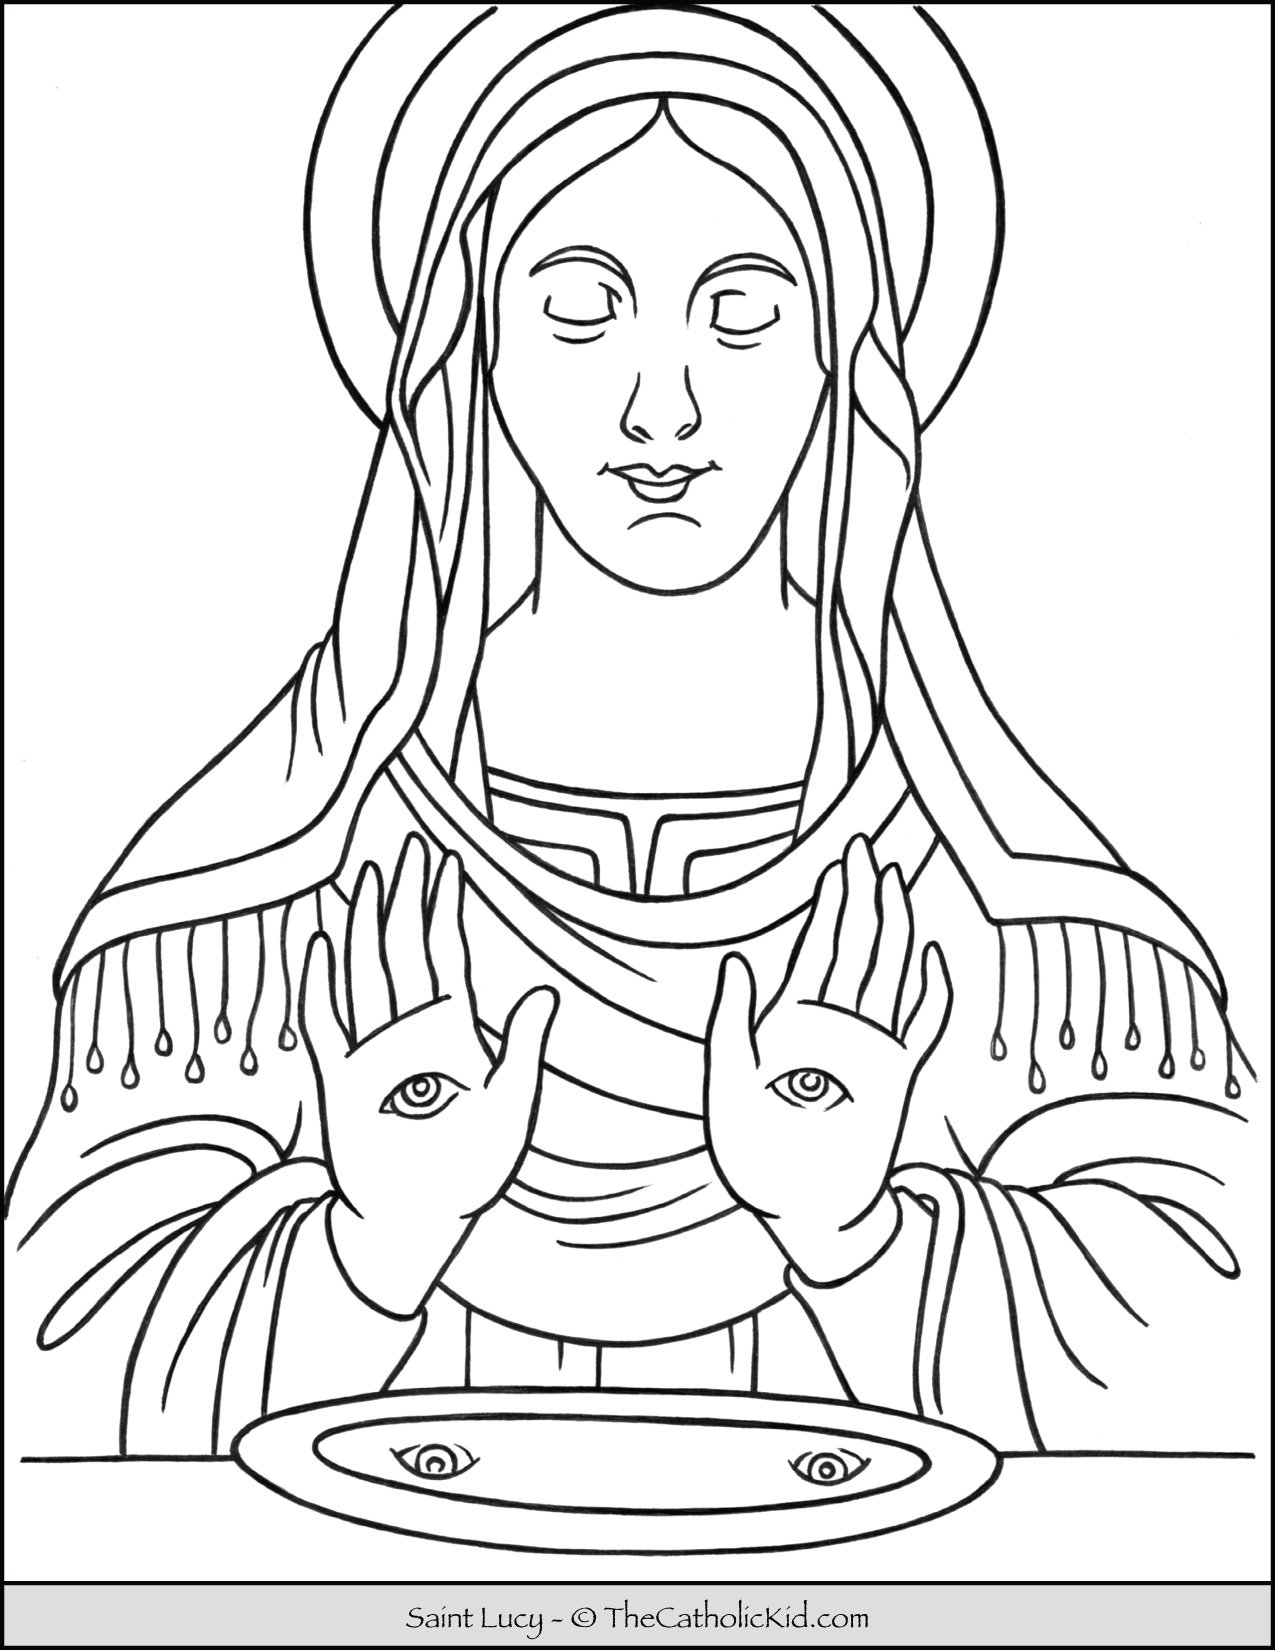 Saint Lucy Catholic Coloring Page